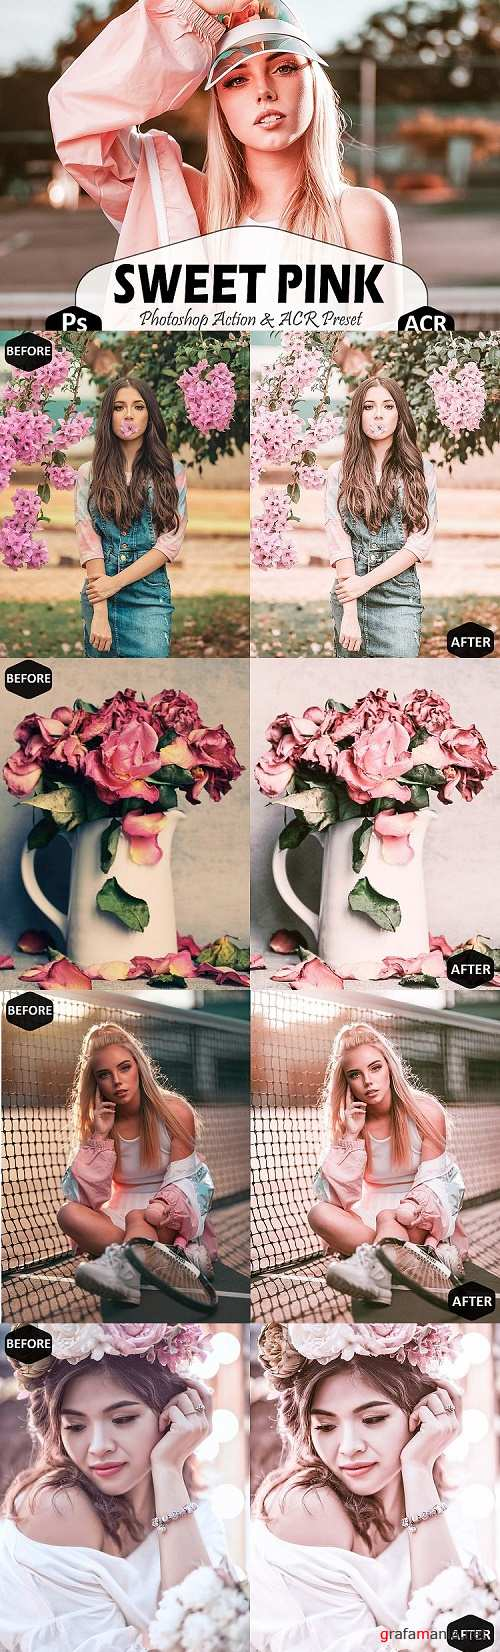 Sweet Pink Photoshop Actions And ACR Presets, Bright modern - 431697